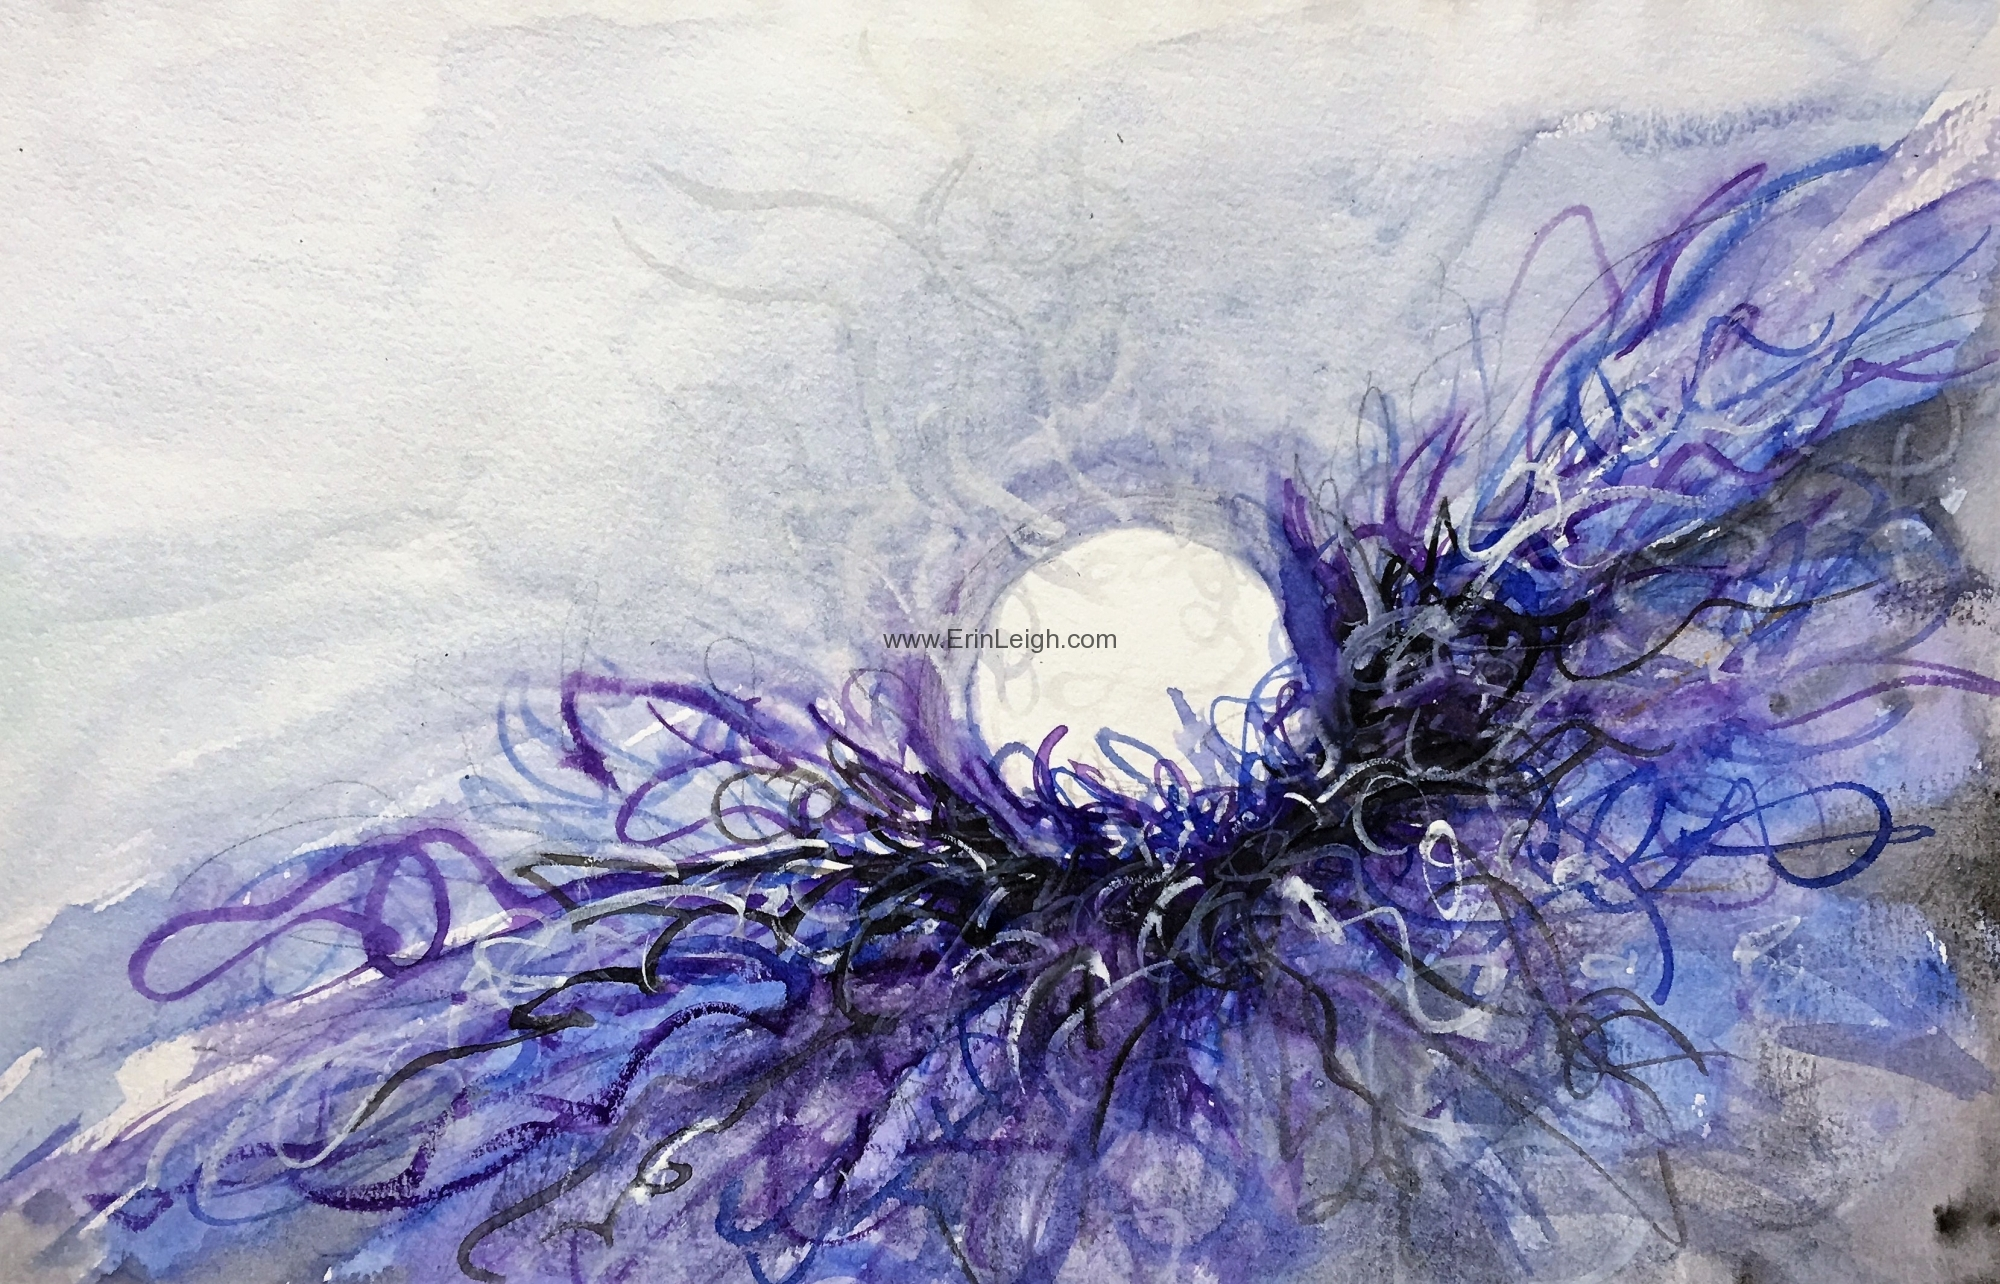 Cradled - Study 46 - Journey to One by Erin Leigh